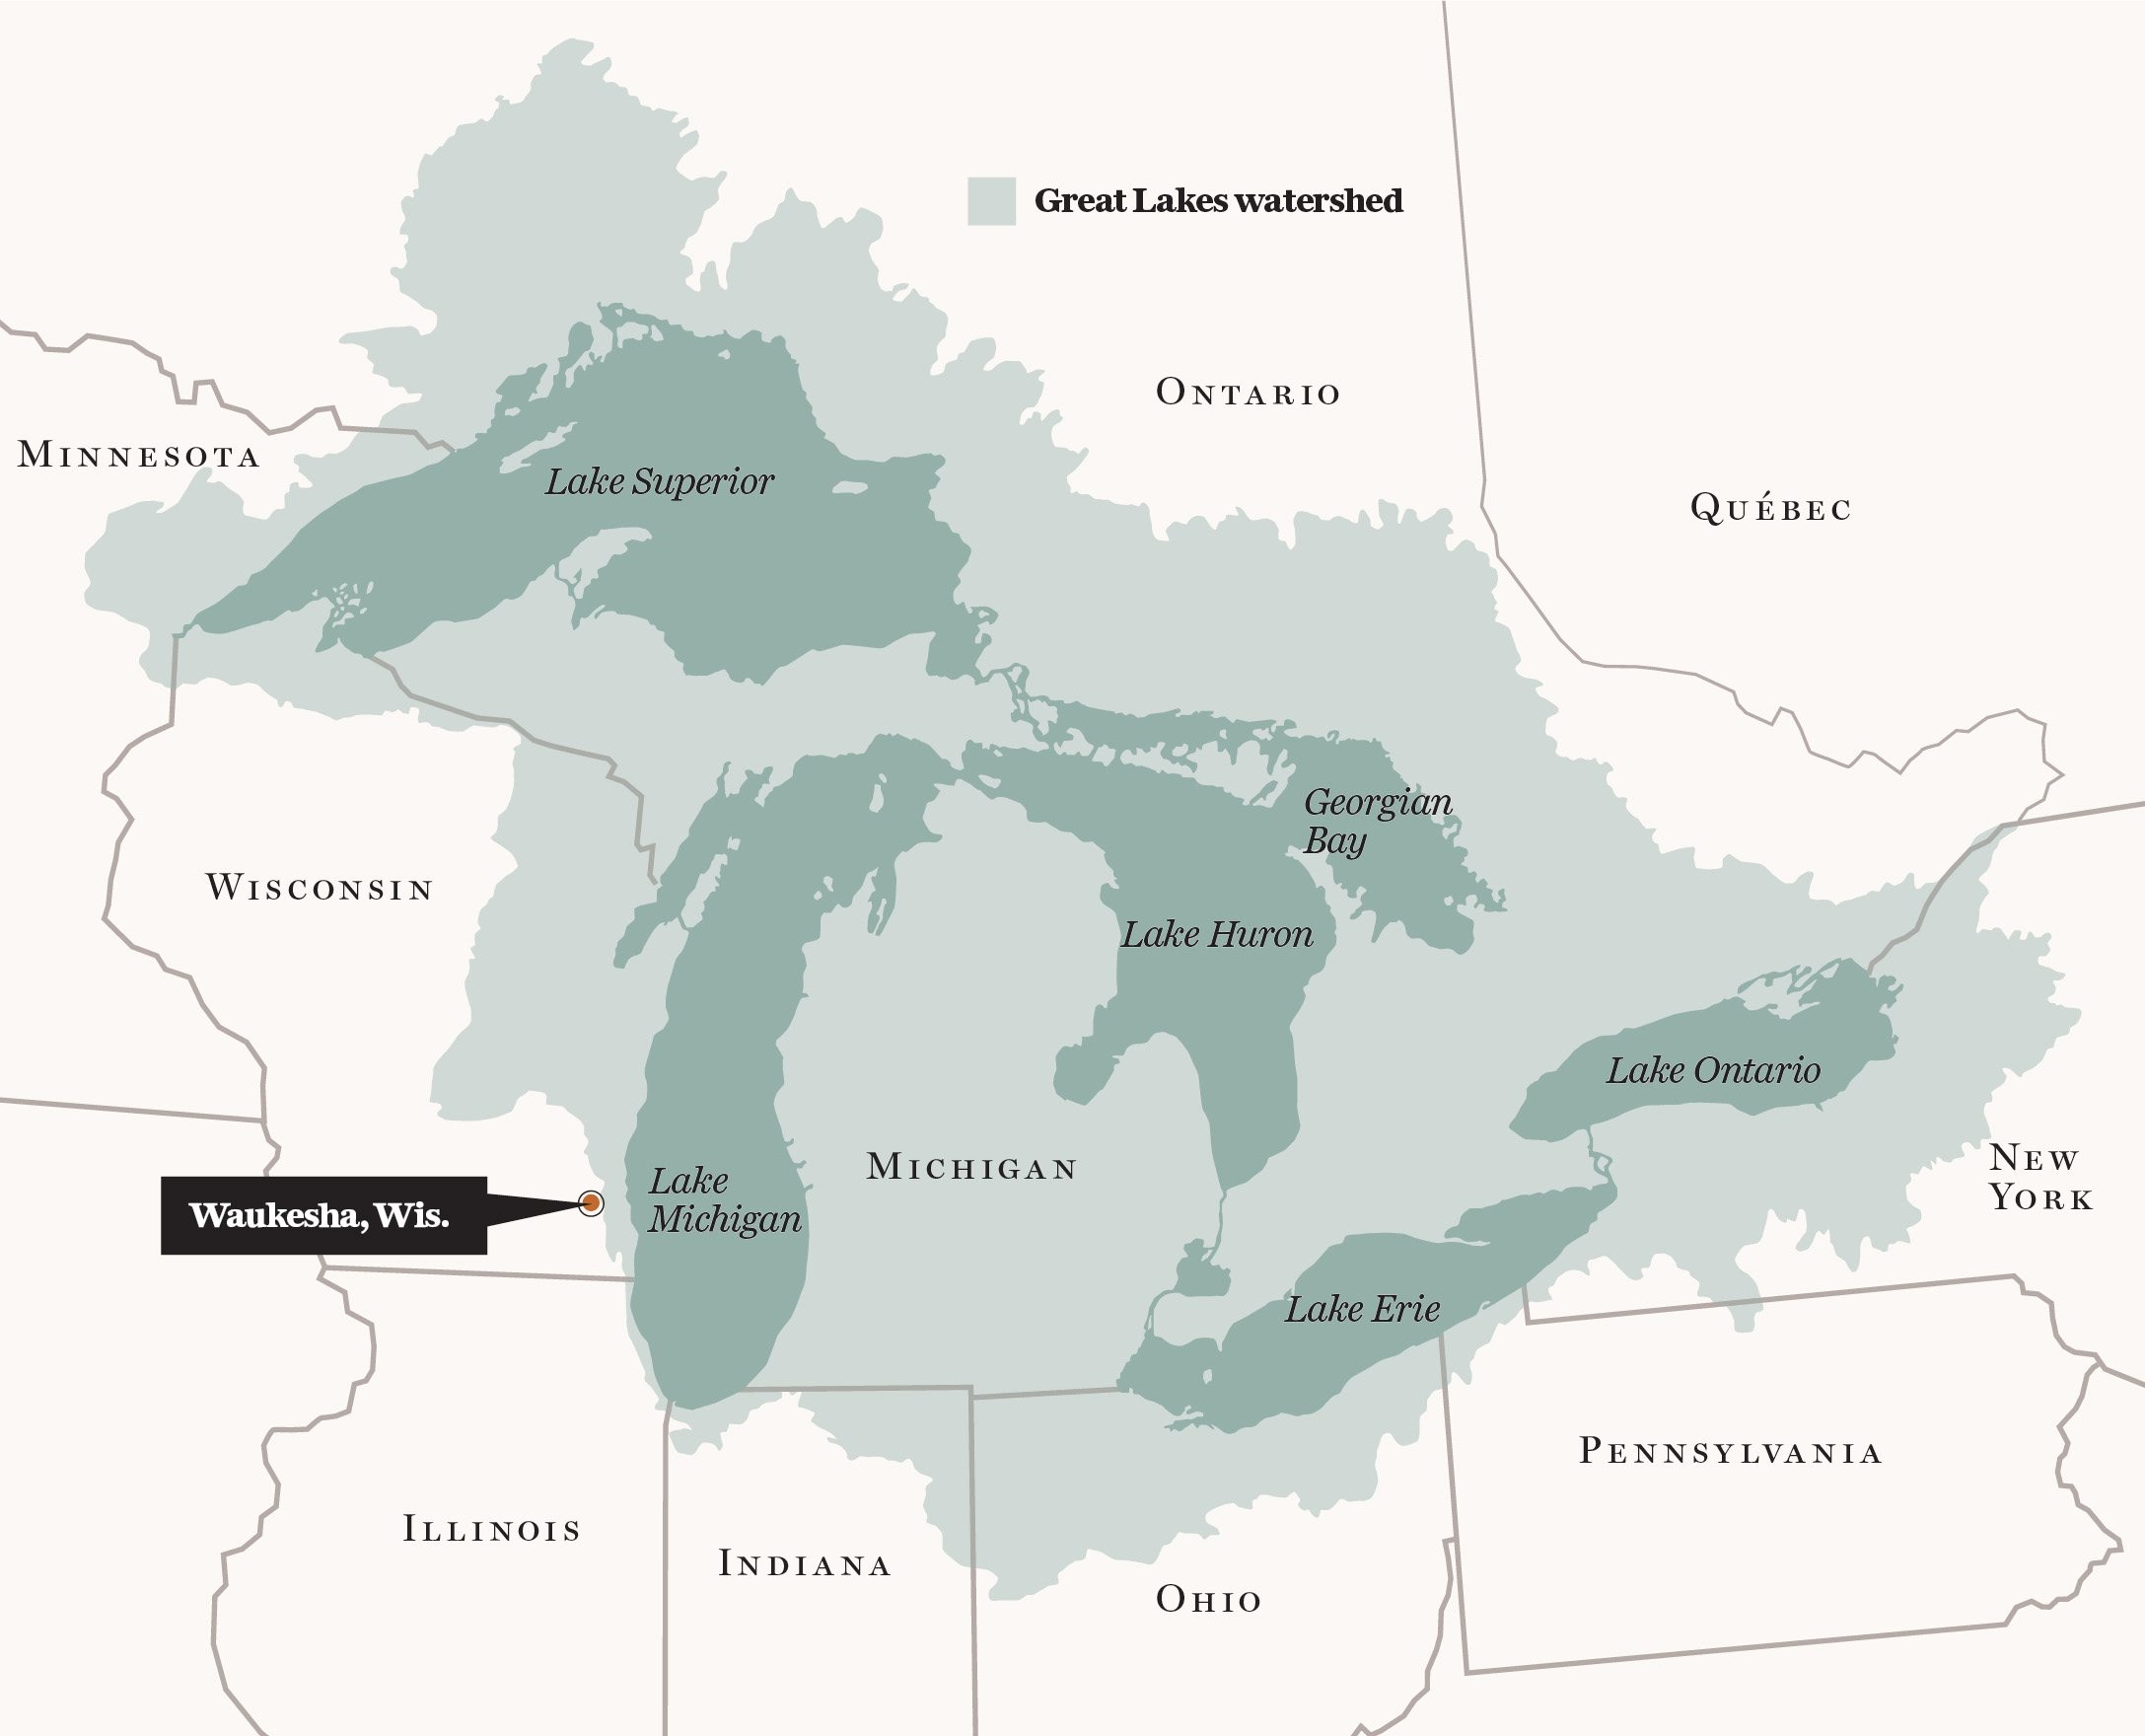 Waukesha, Wis., is applying for water diversion from Lake Michigan.